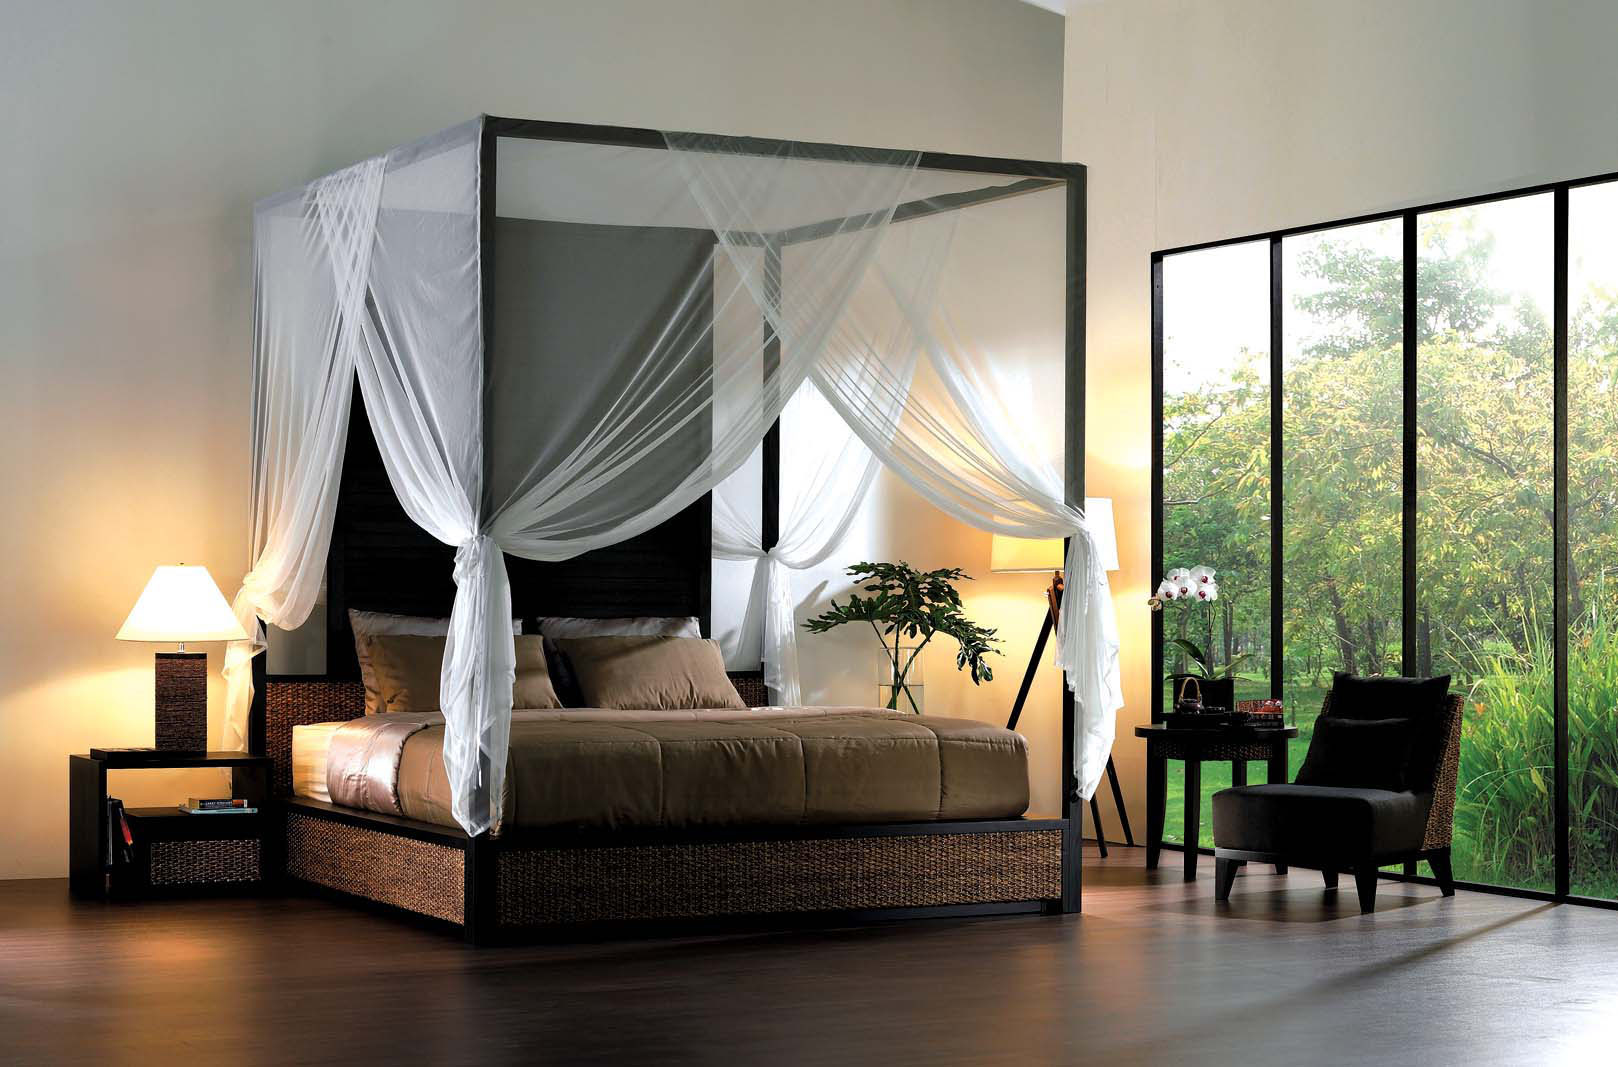 Canopy beds For the Modern Bedroom Freshome (34)